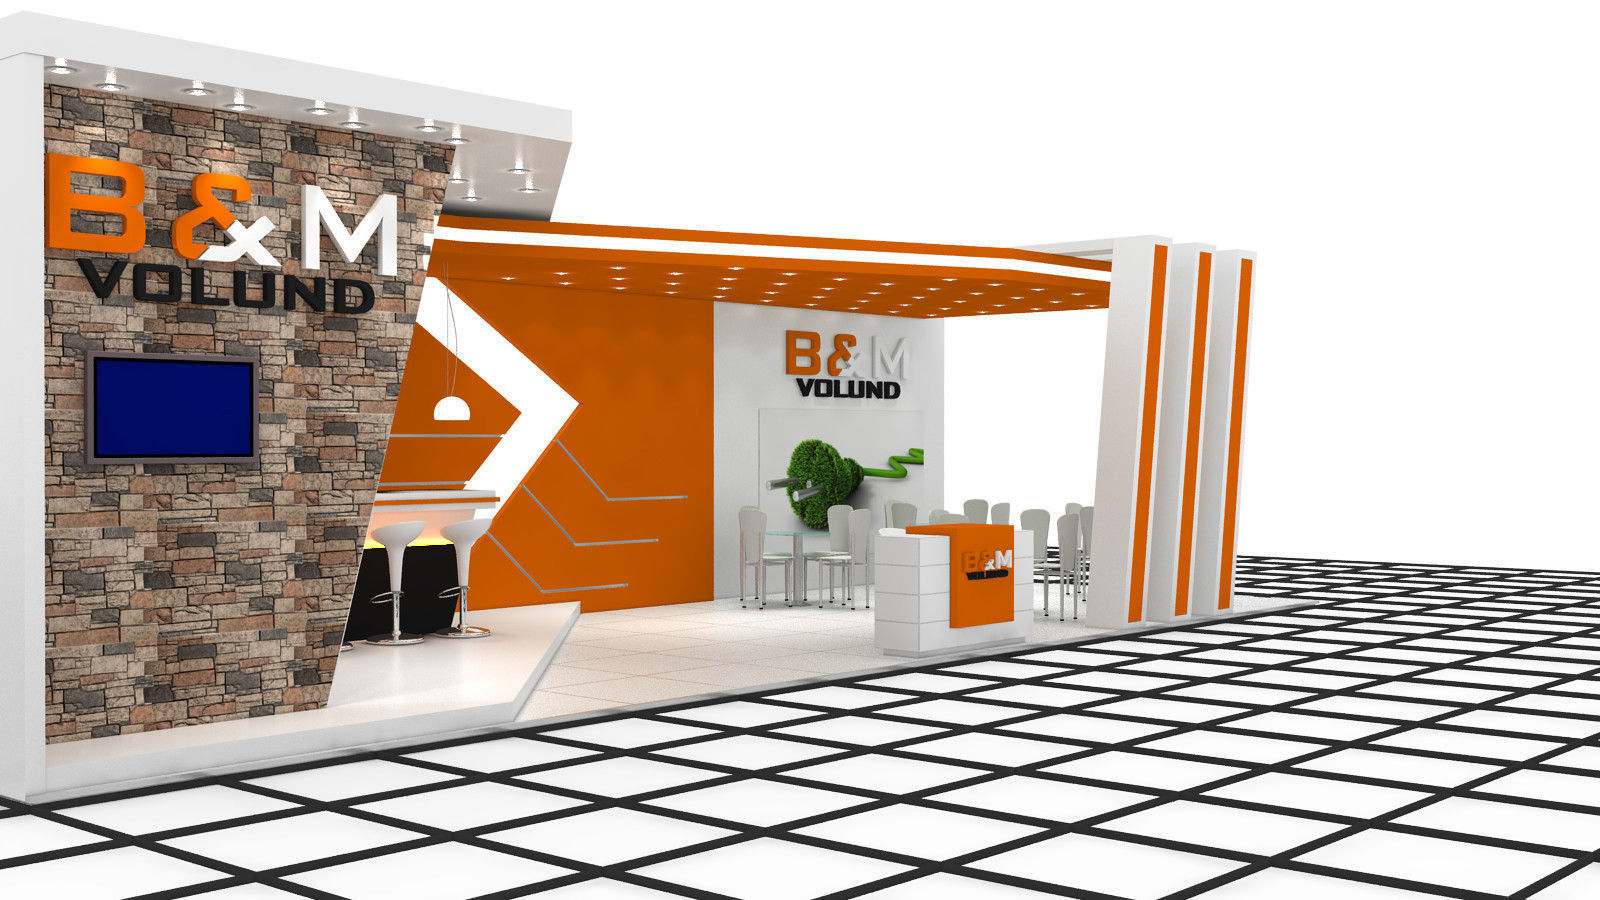 Exhibition Stand Designer Job Description : B m exhibition stand design d model max obj fbx dwg mtl